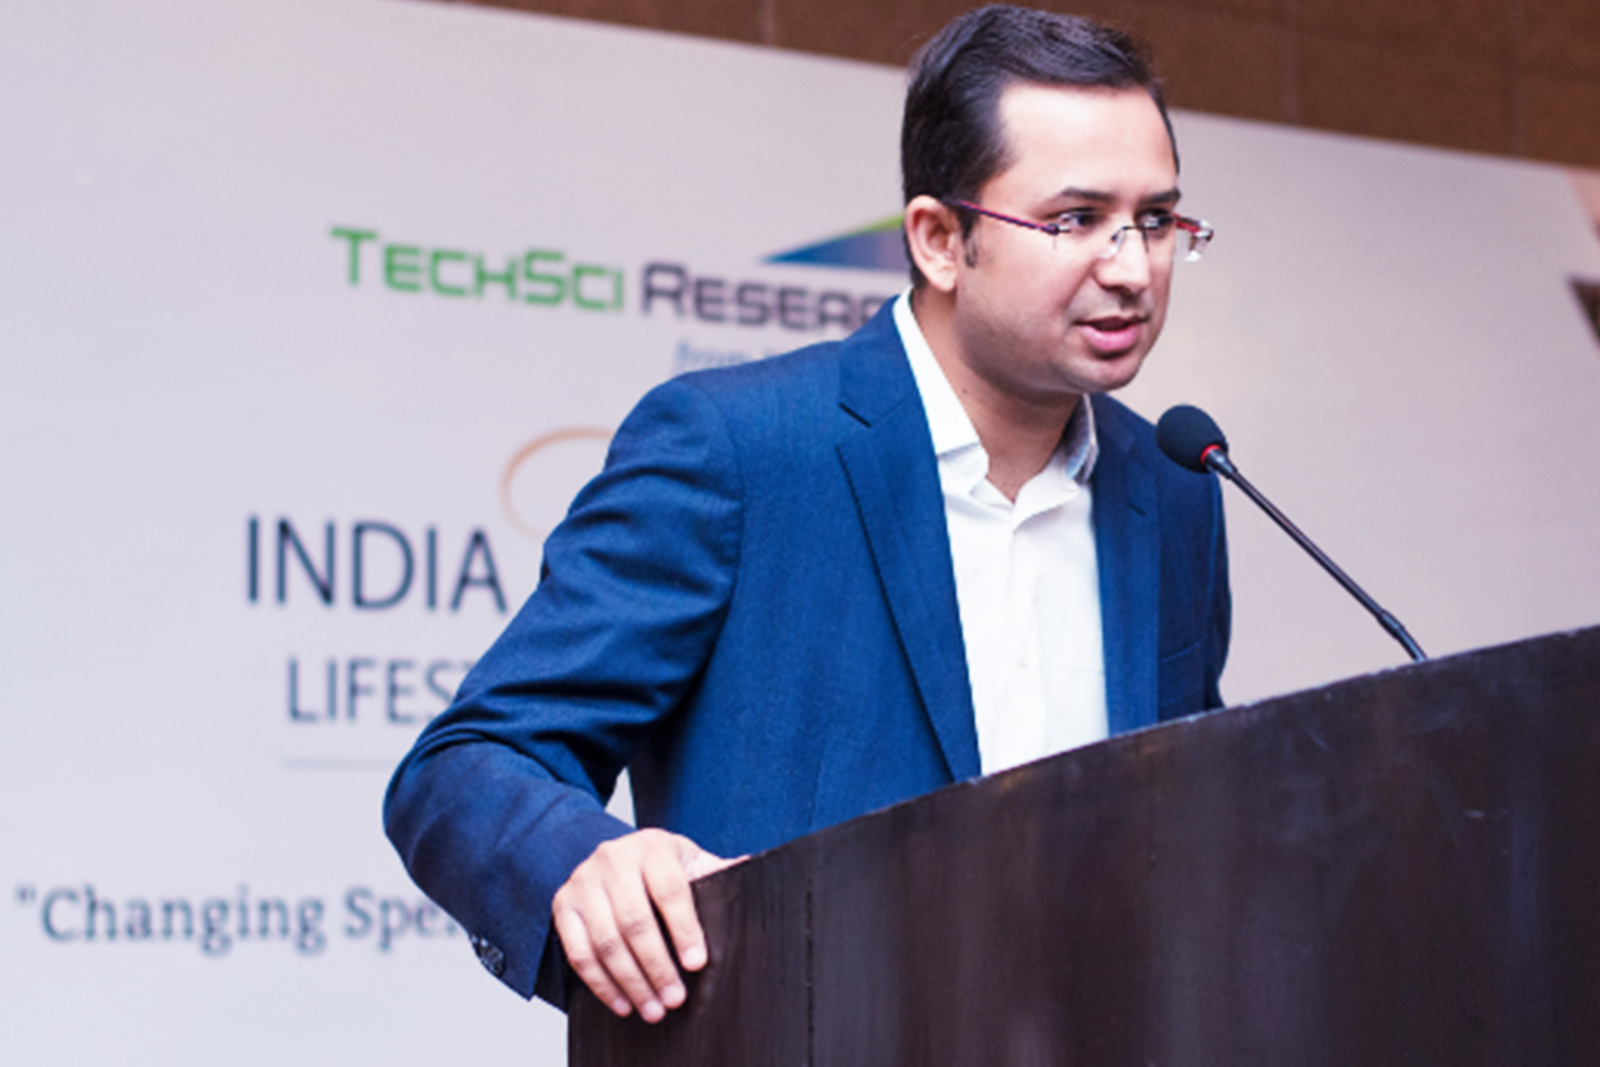 Mr. Karan Chechi, India Consumer Lifestyle Trends, 2018